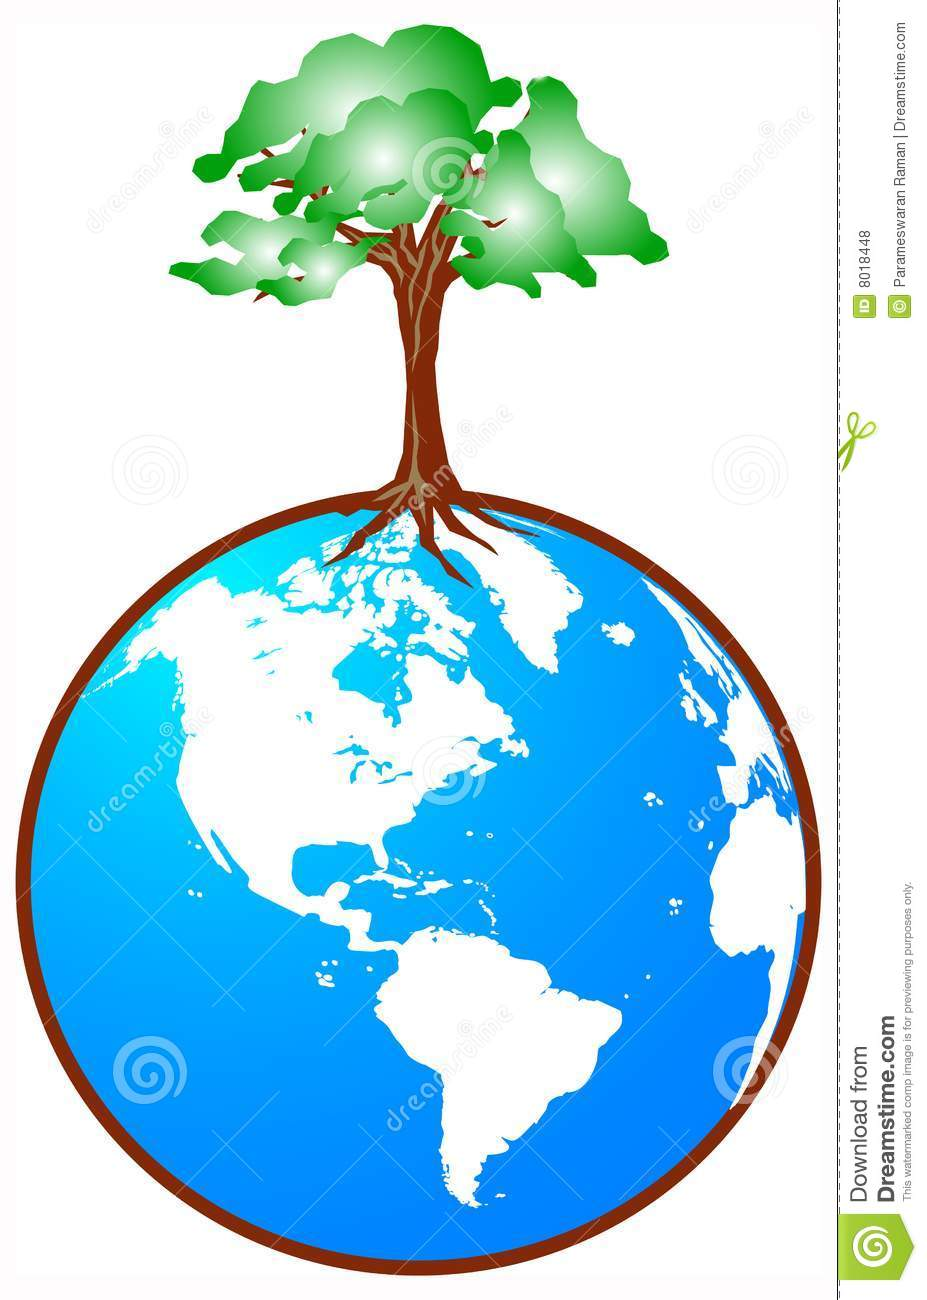 medium resolution of download globe with tree stock vector illustration of retro country 8018448